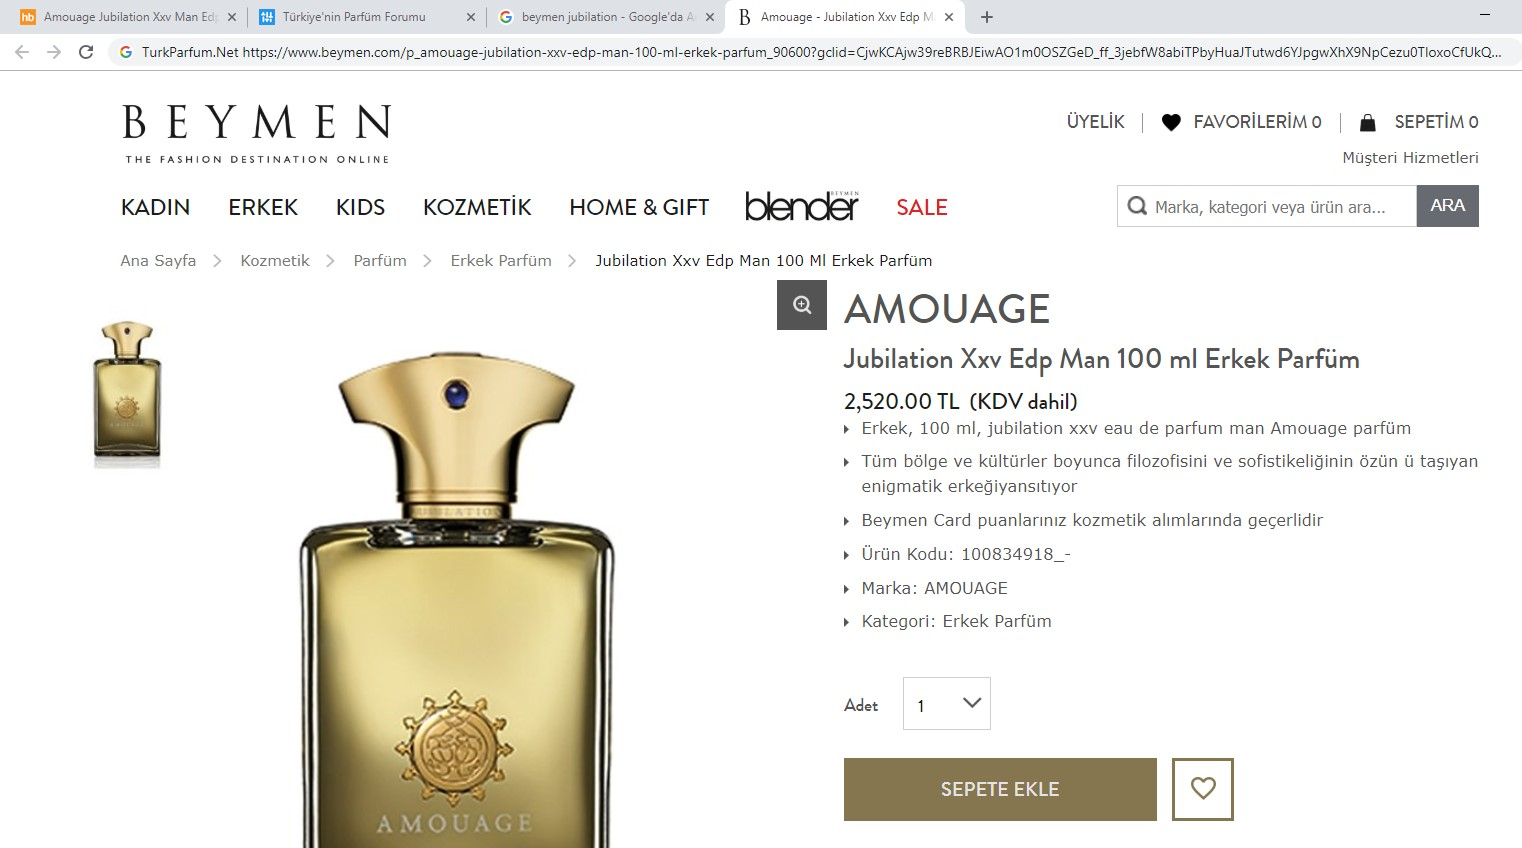 indirim amouage jubilation beymen com turkparfum net Screenshot_3.jpg